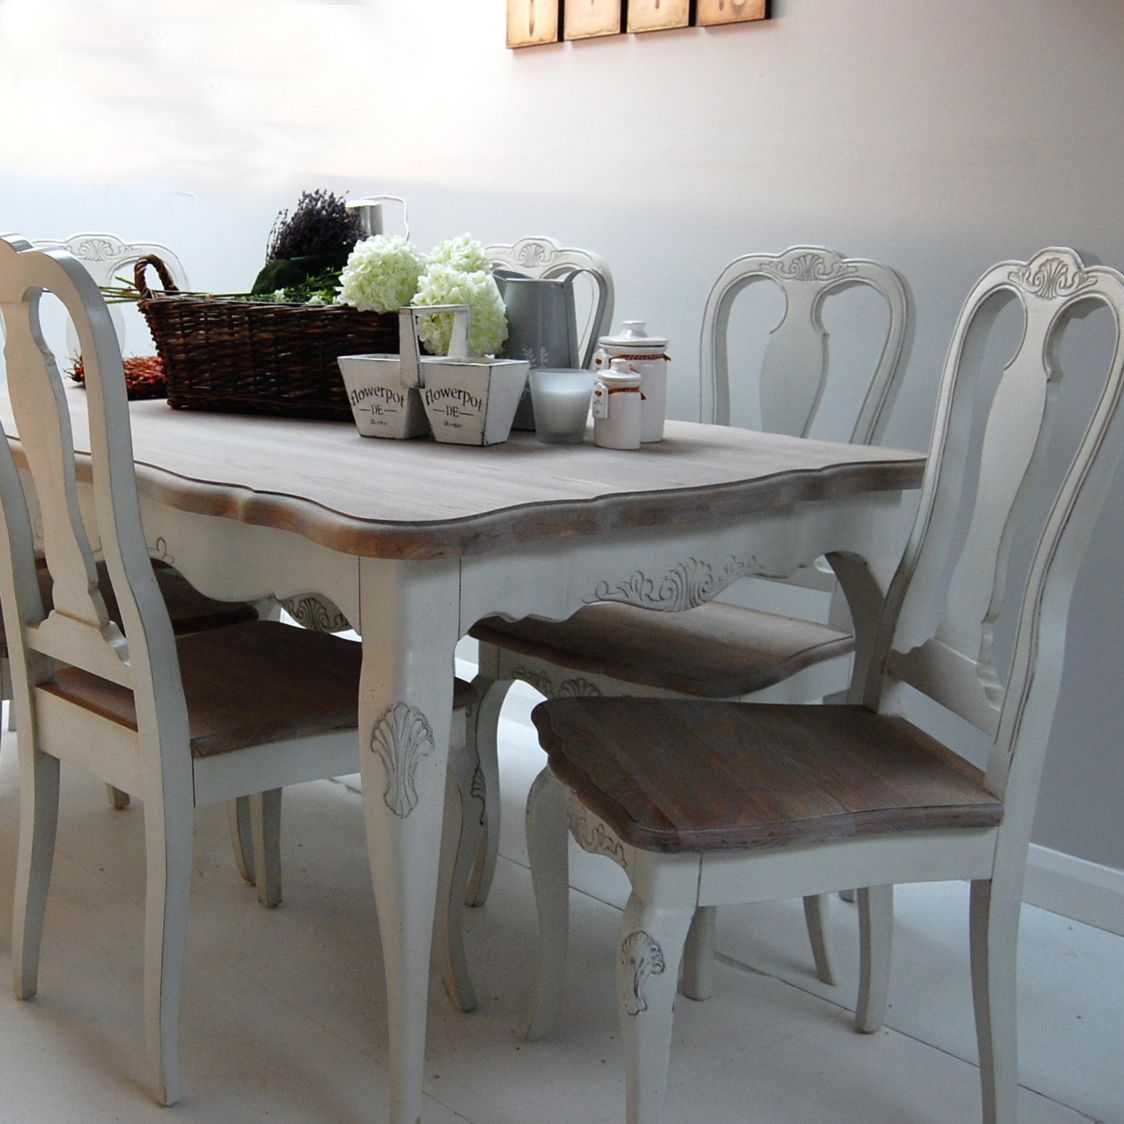 Etonnant Dining Room Sets On Clearance   Best Office Furniture Check More At Http://